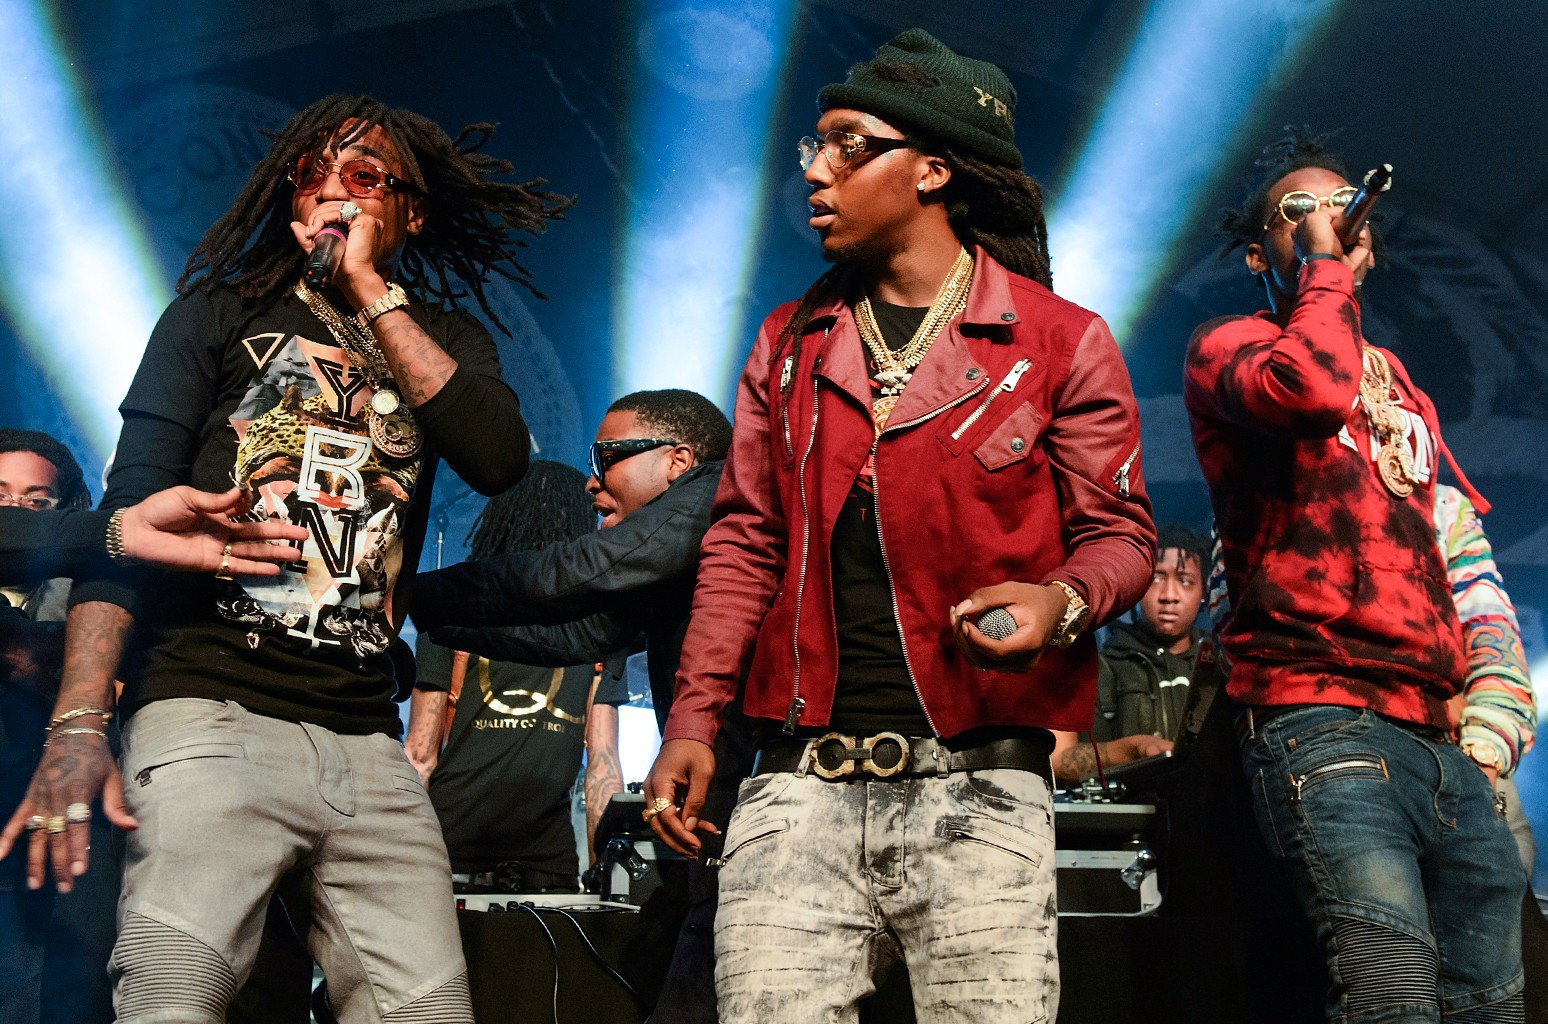 Migos perform during SXSW on March 20, 2015 in Austin, Texas.